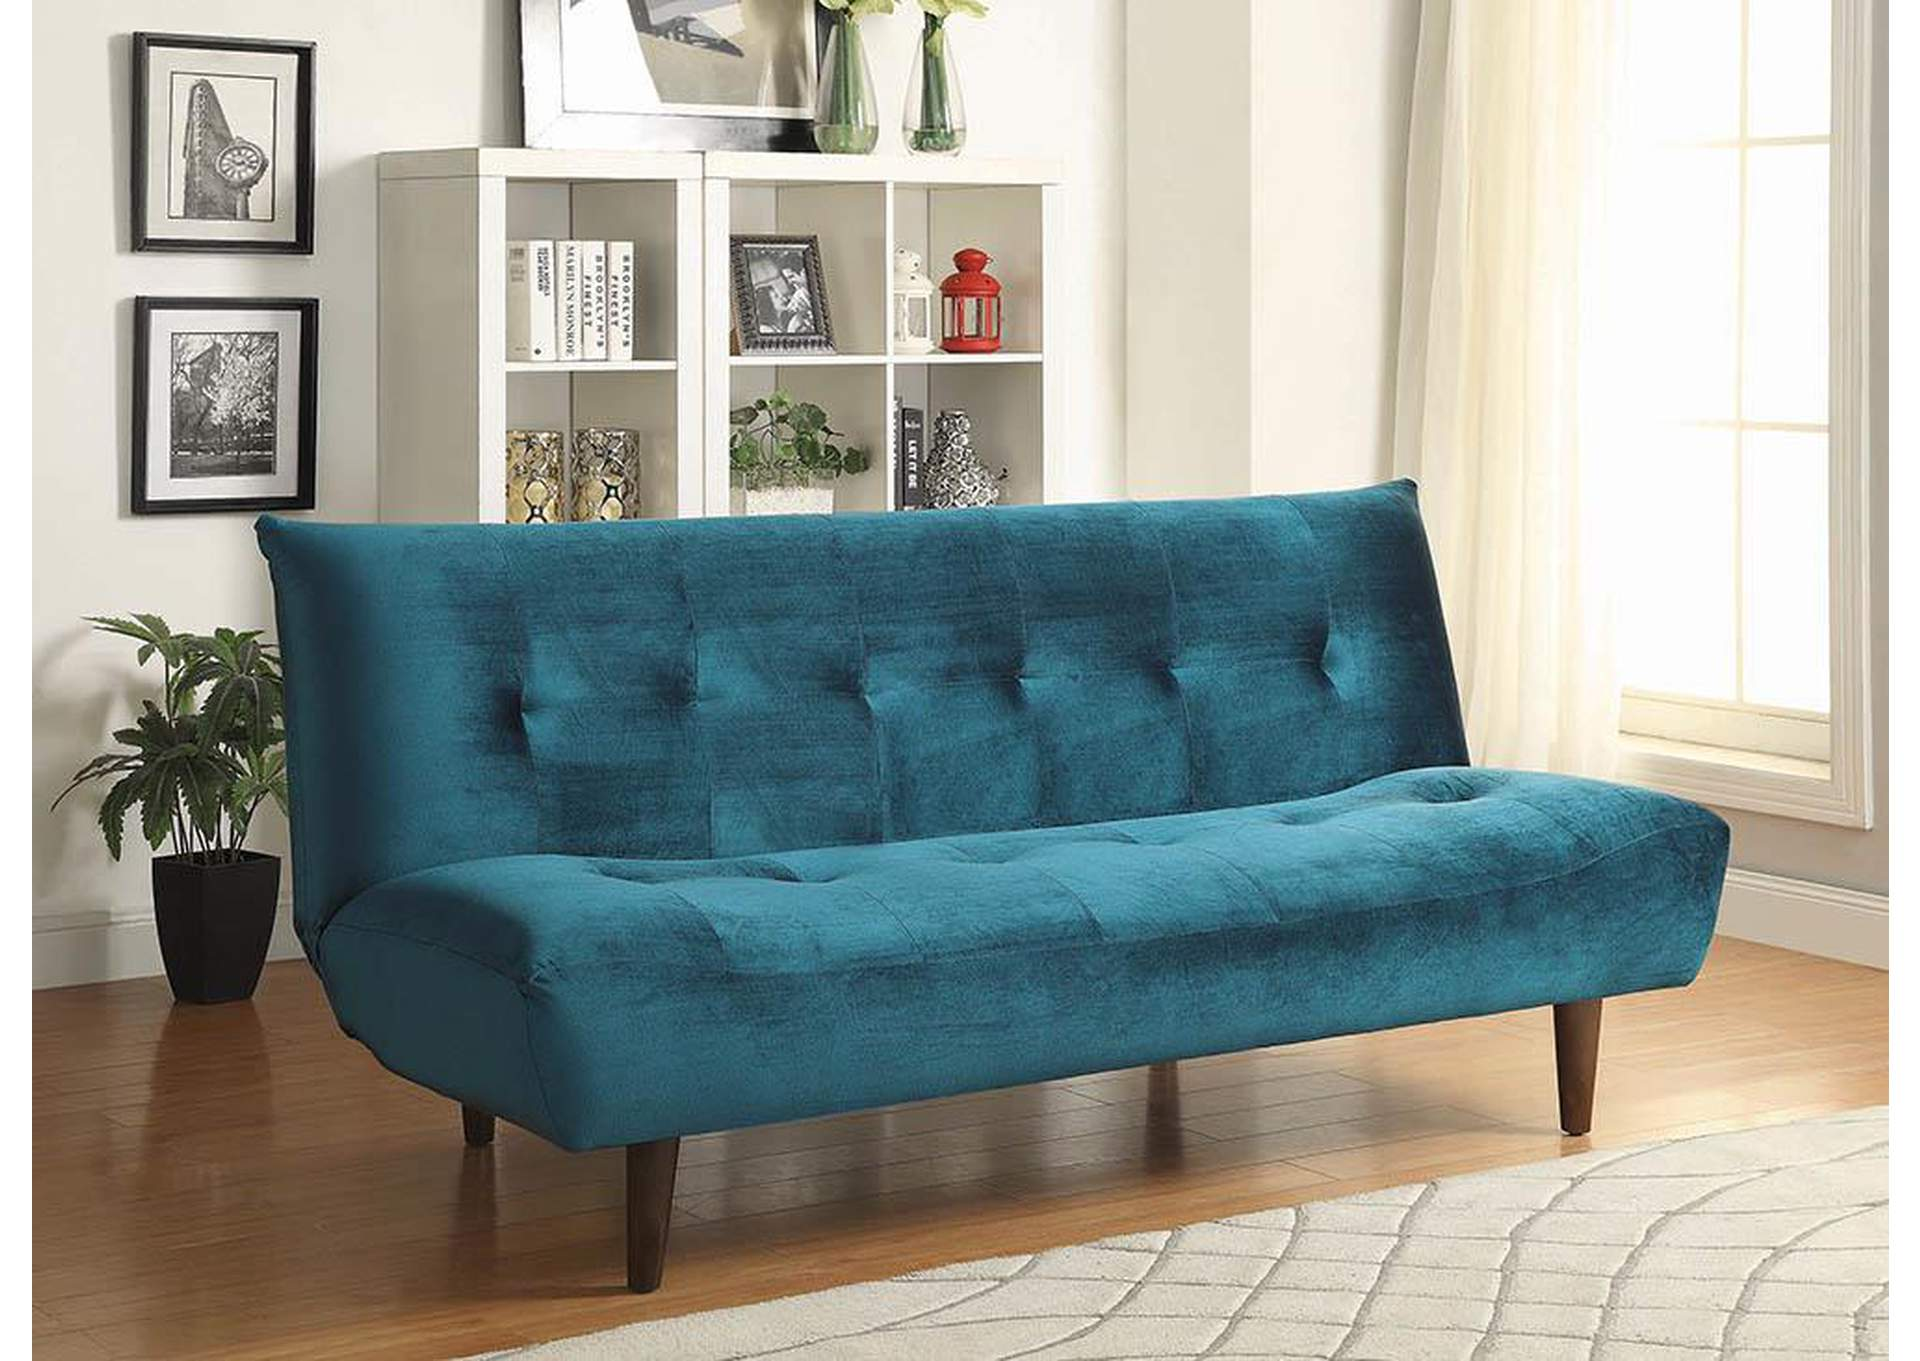 living room furniture sets austin tx small country style ideas austin's couch potatoes | stores austin, texas ...